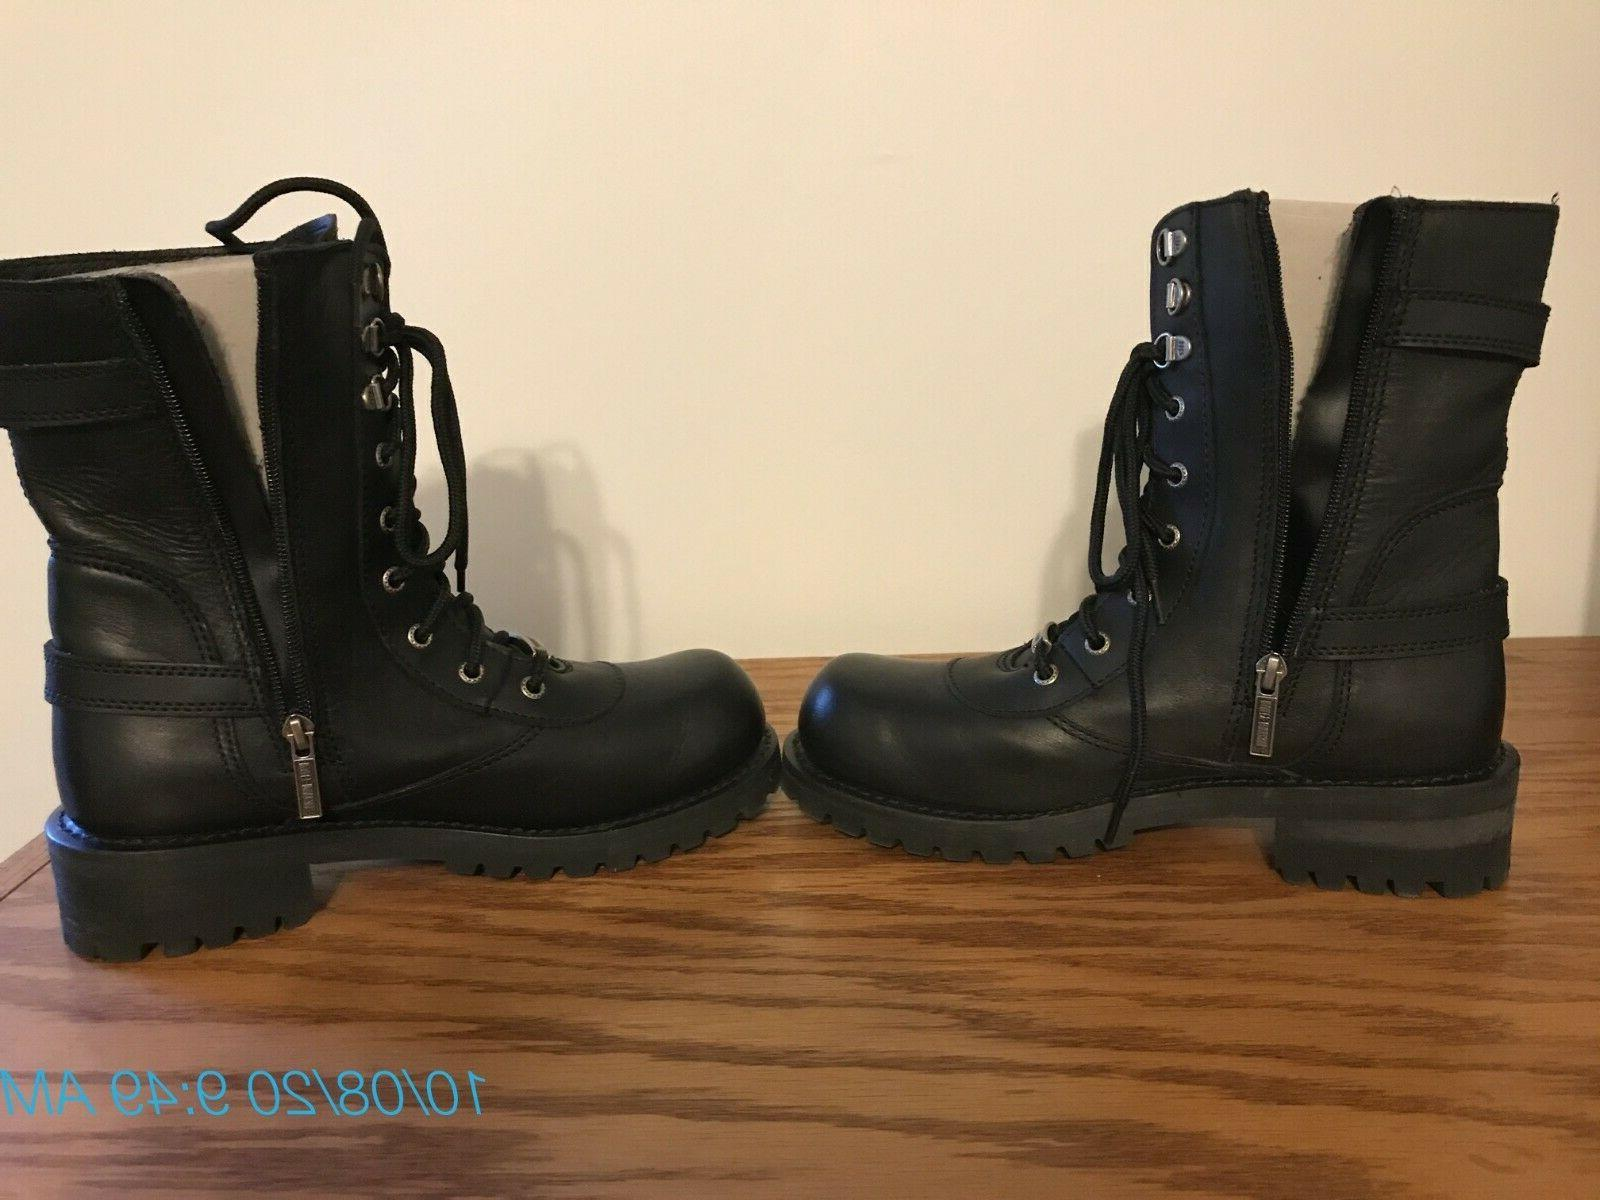 Harley-Davidson Women's Motorcycle Boots Size 9.5